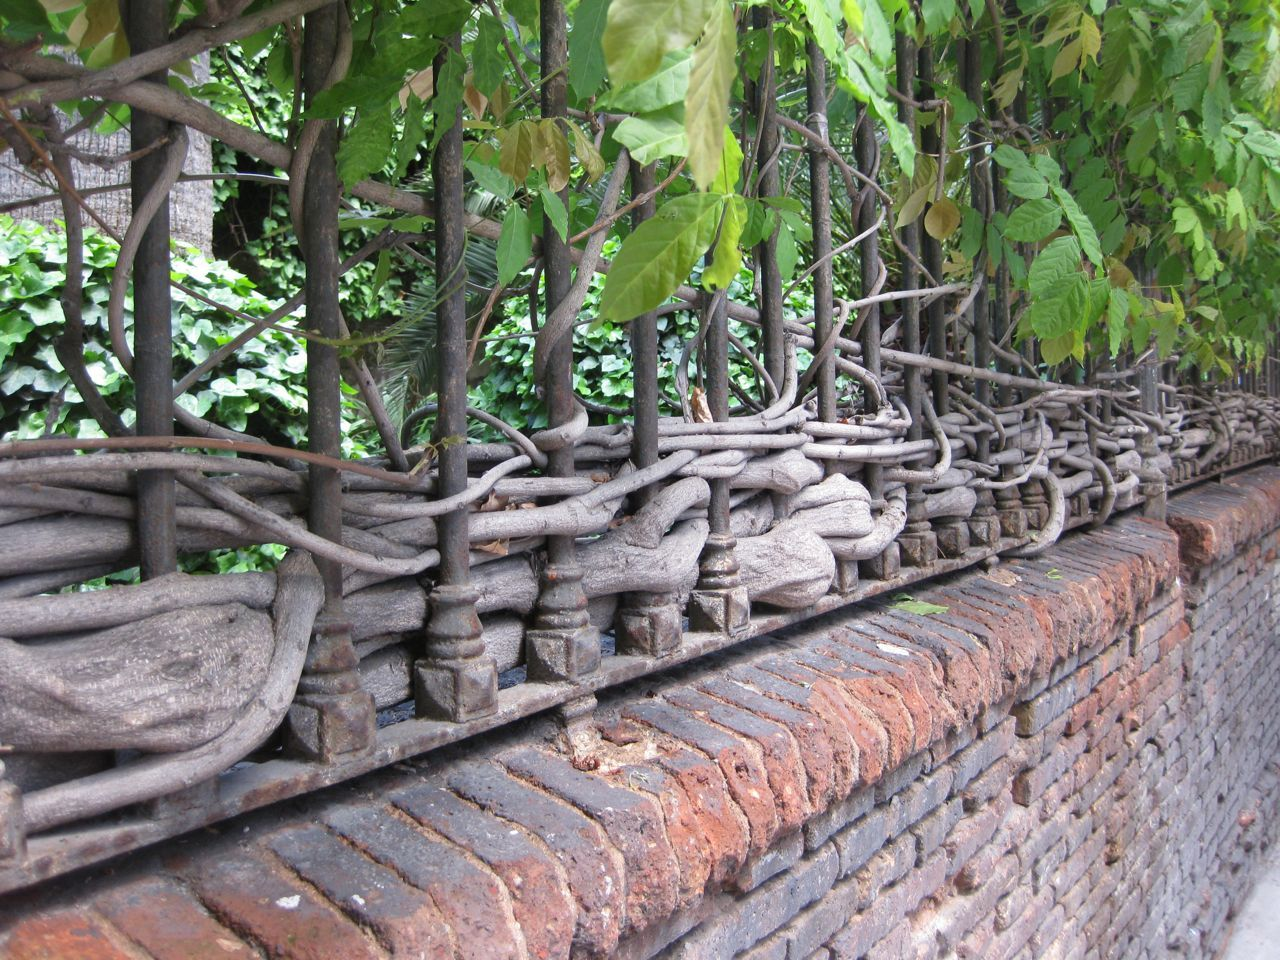 So Long Summer With Images Secret Life Of Plants Iron Fence